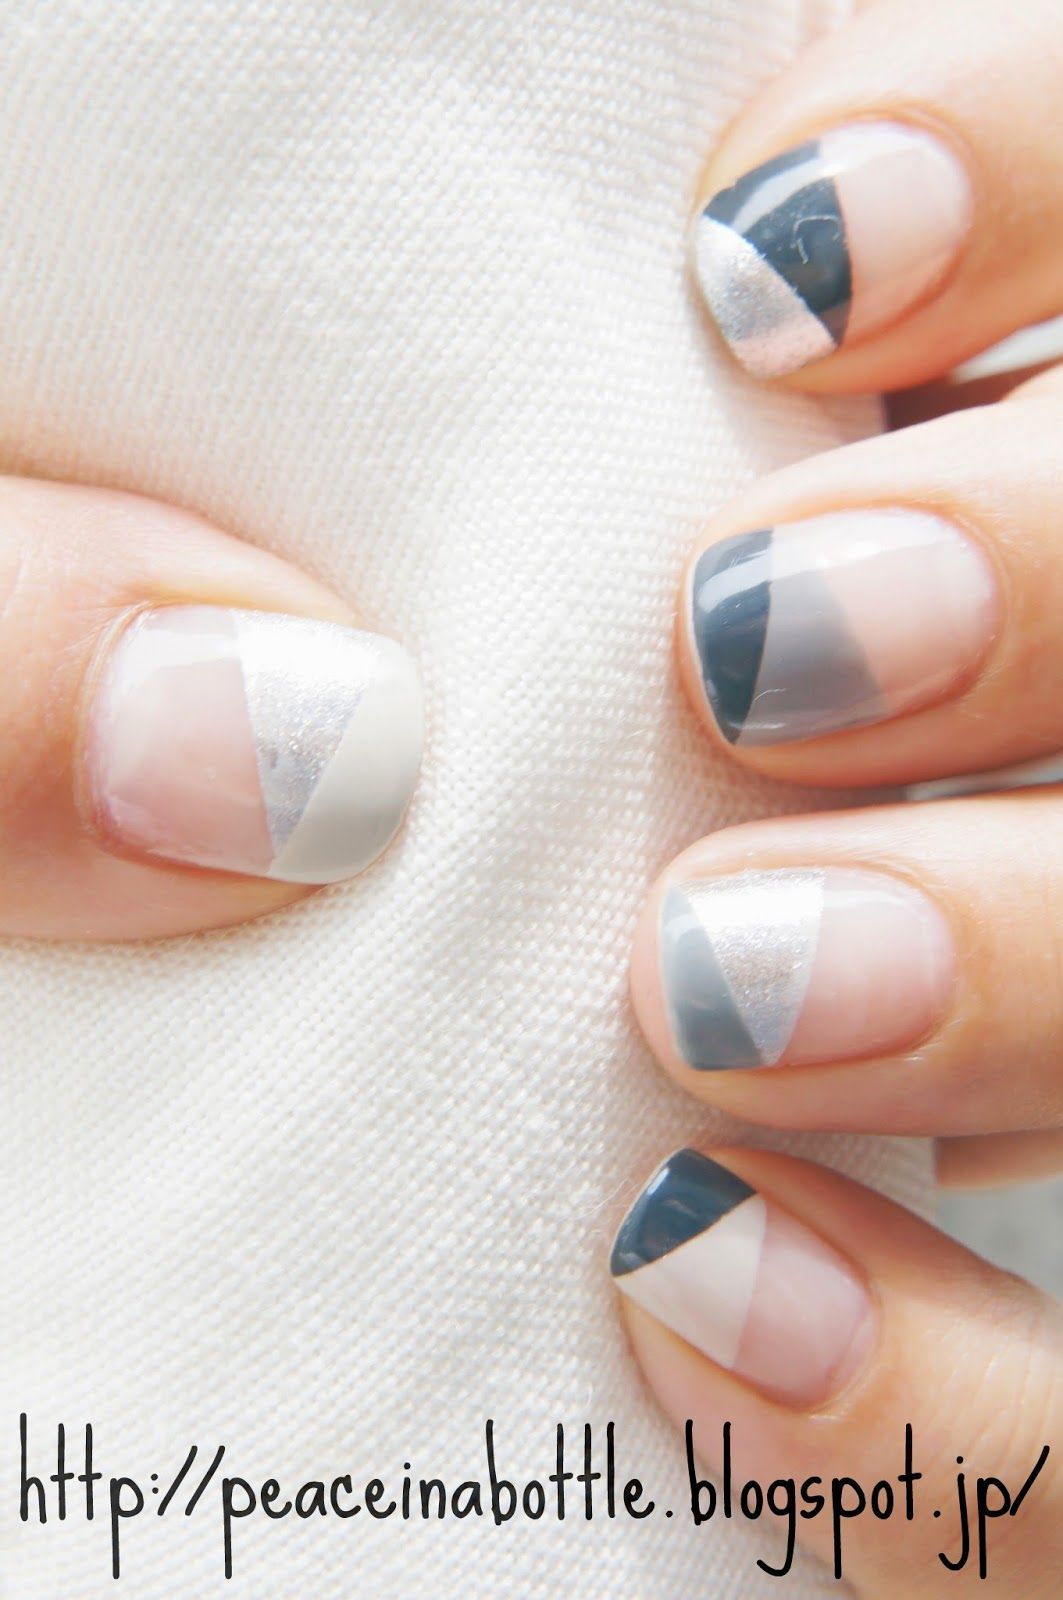 m o n o - c h r o m i u m | Gray nails, Gray and Manicure